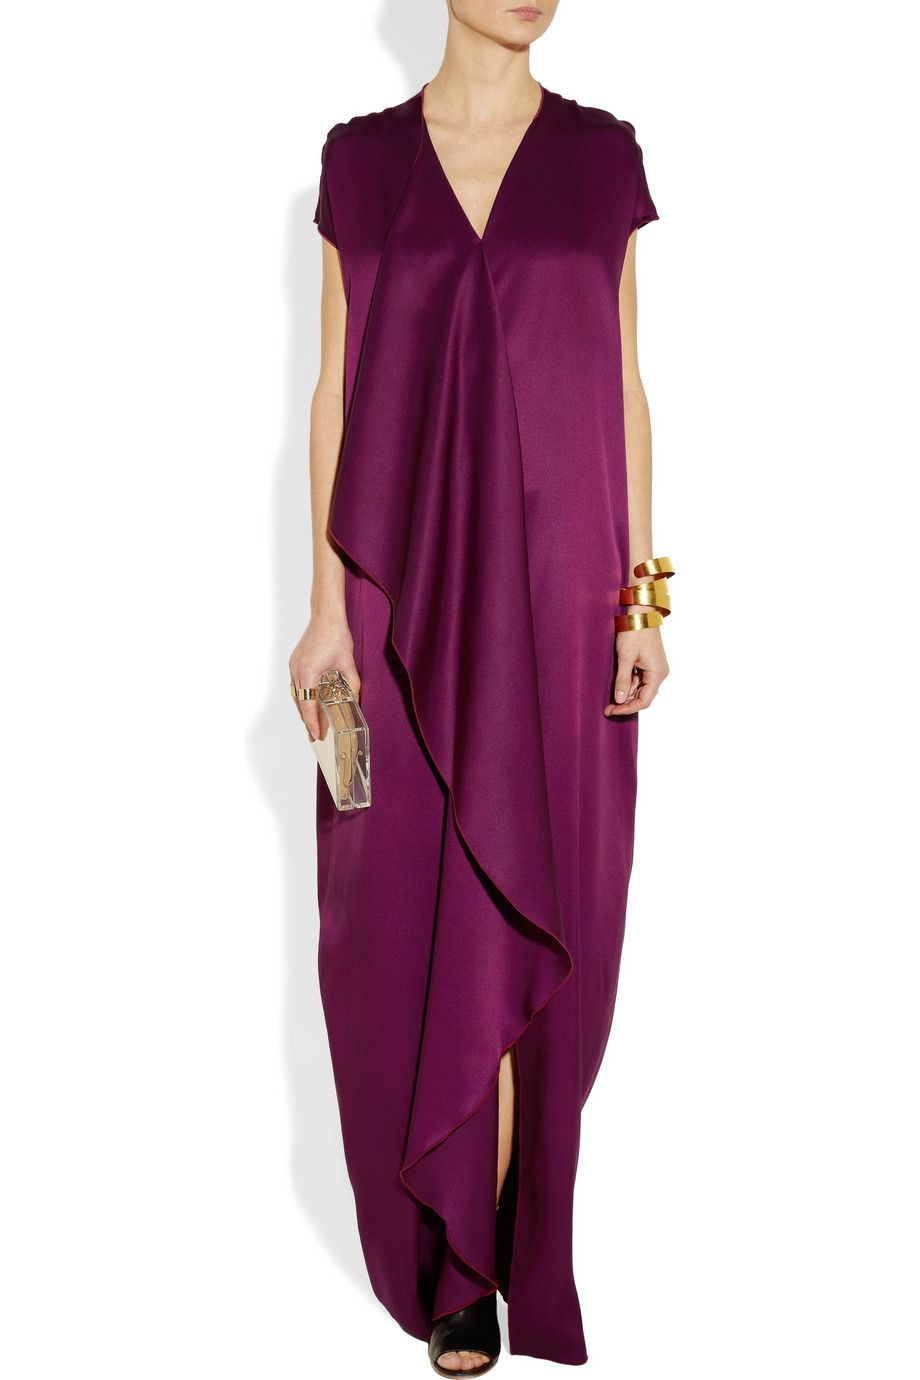 The Row Priston silk-satin maxi dress: Minimal & Classic | Nordhaven ...